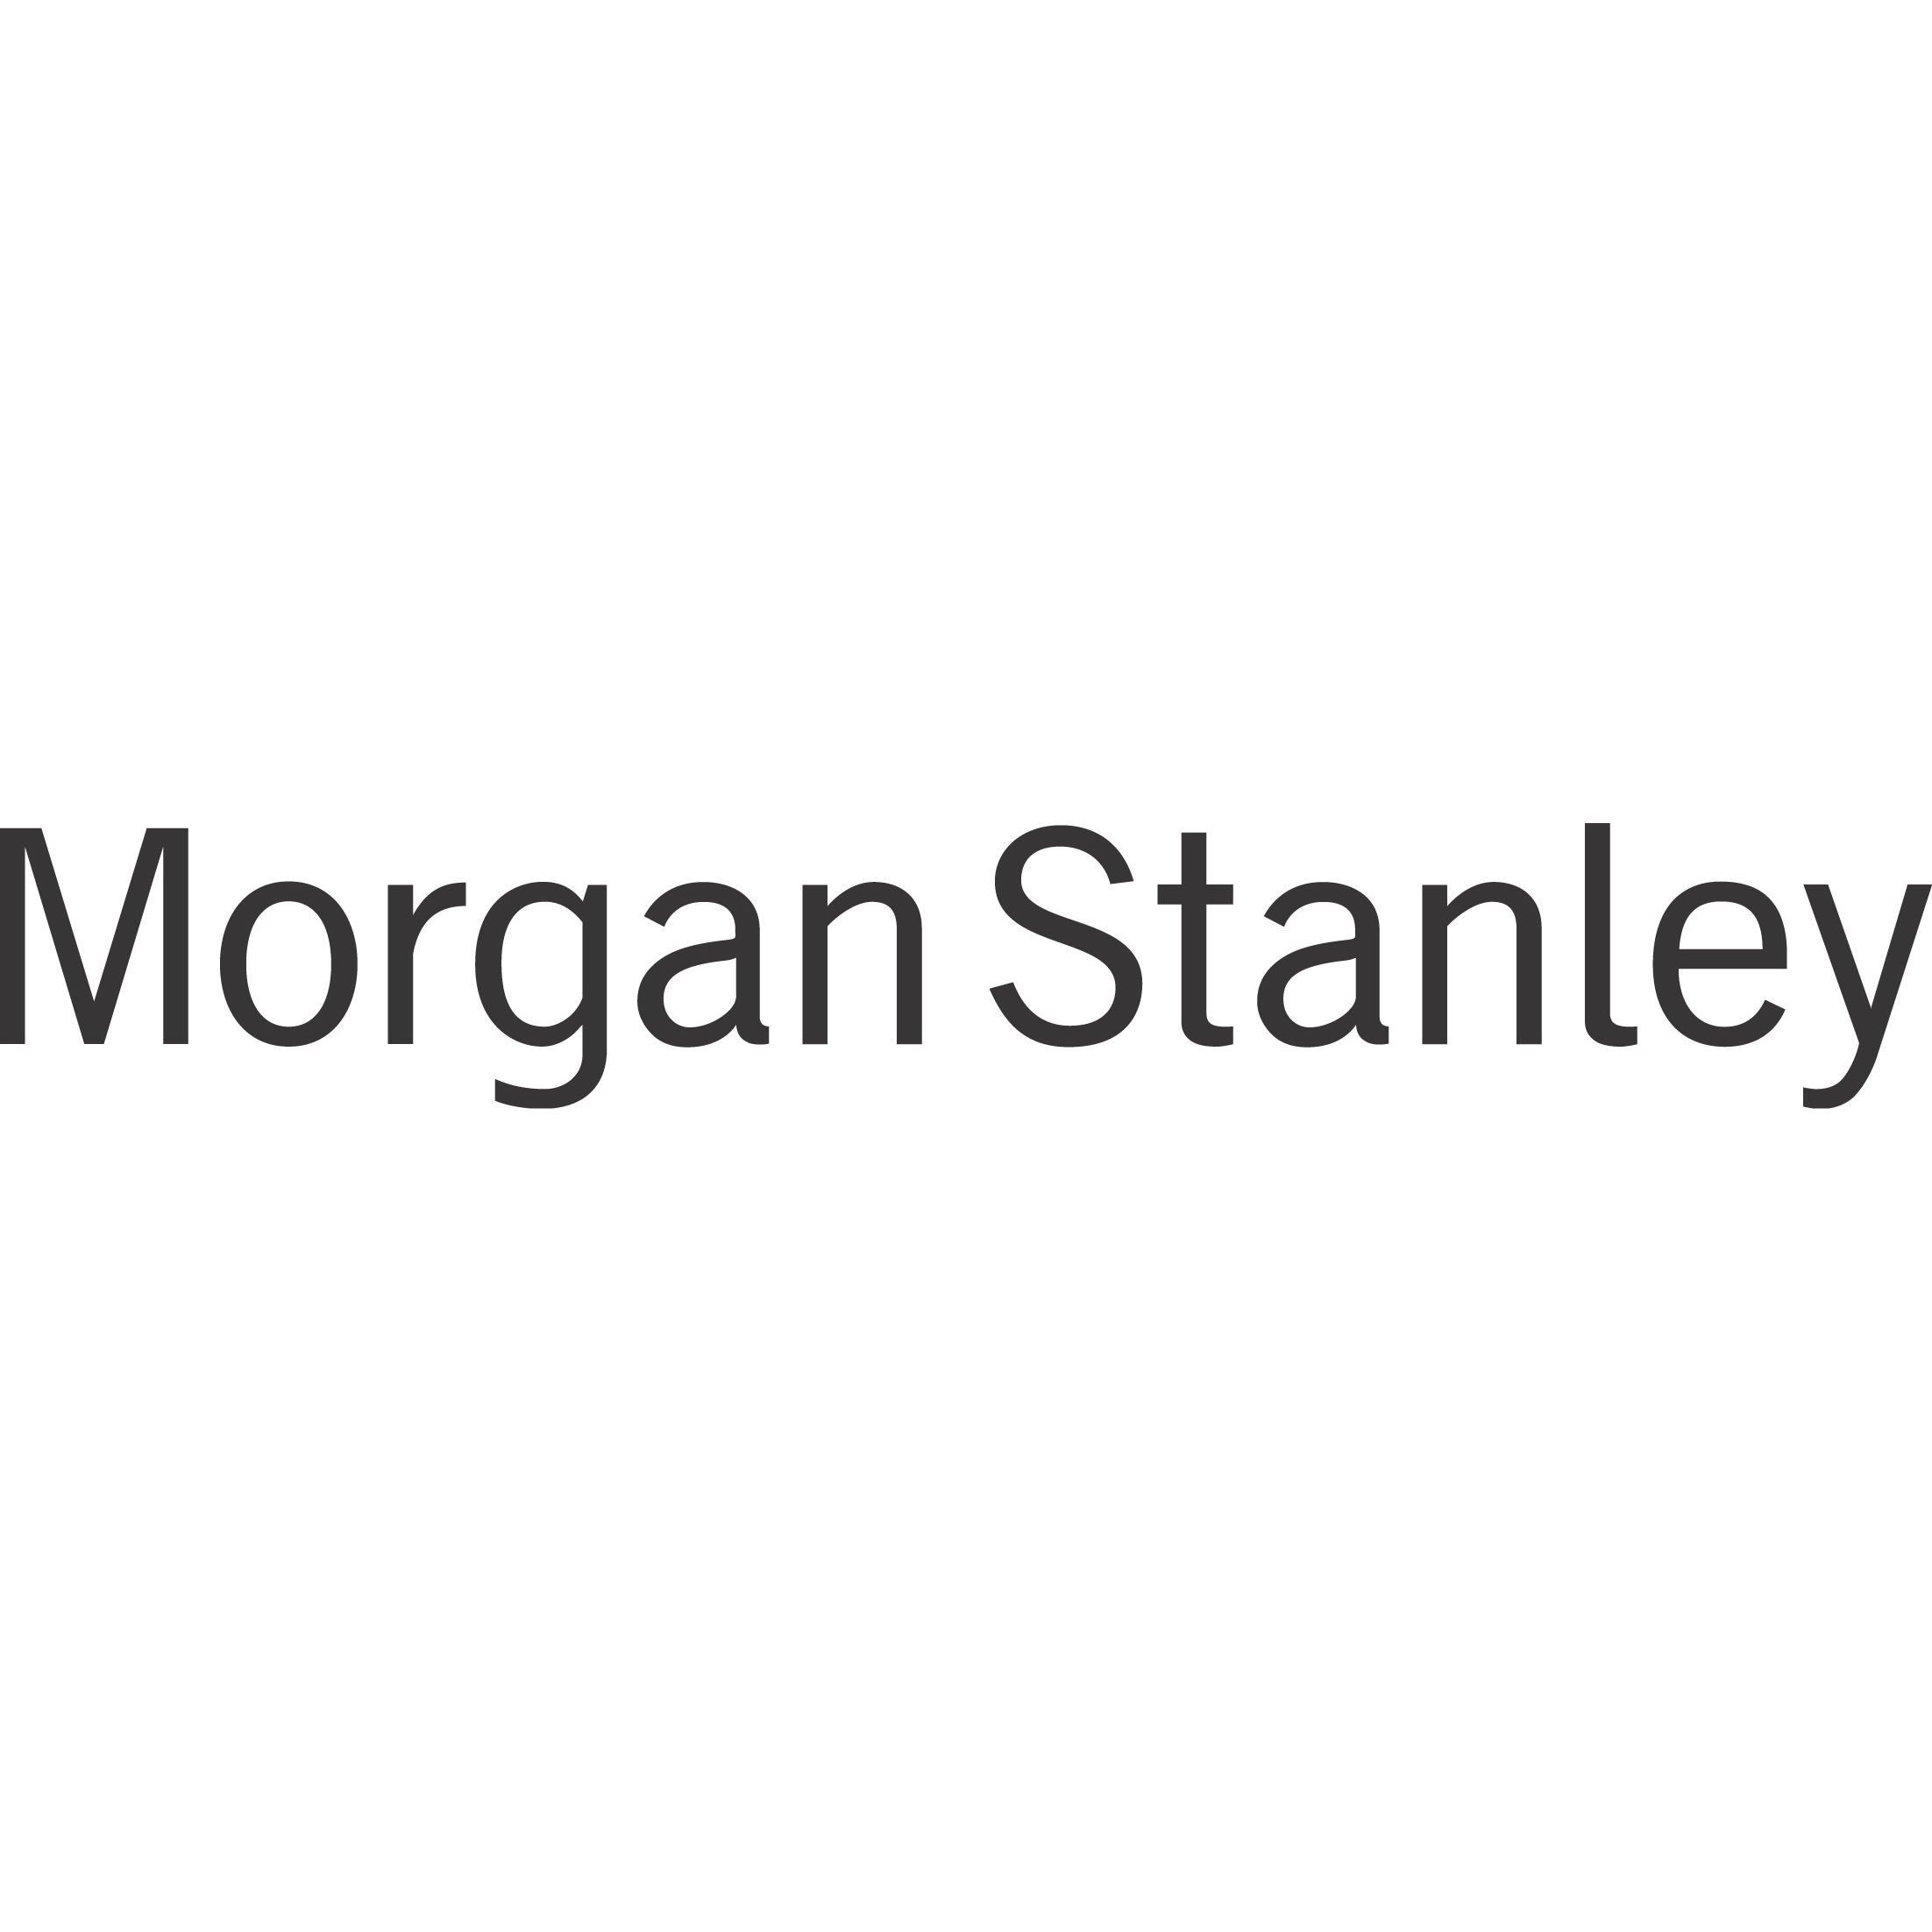 Cory Bloom - Morgan Stanley | Financial Advisor in Pasadena,California